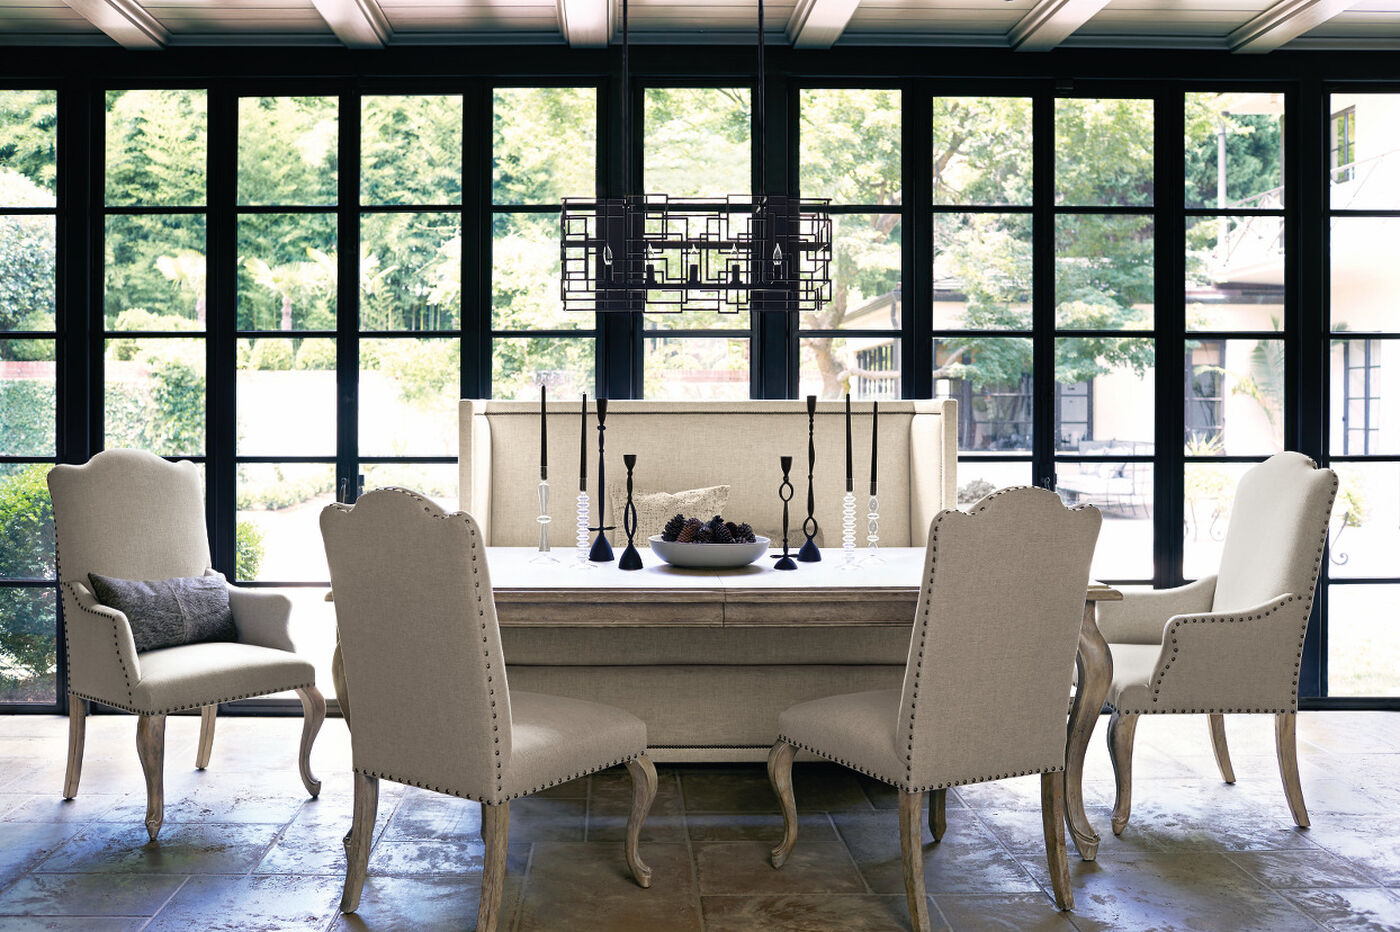 Bernhardt Campania Weathered Sand Dining Table Mathis Brothers - Bernhardt dining room furniture collections